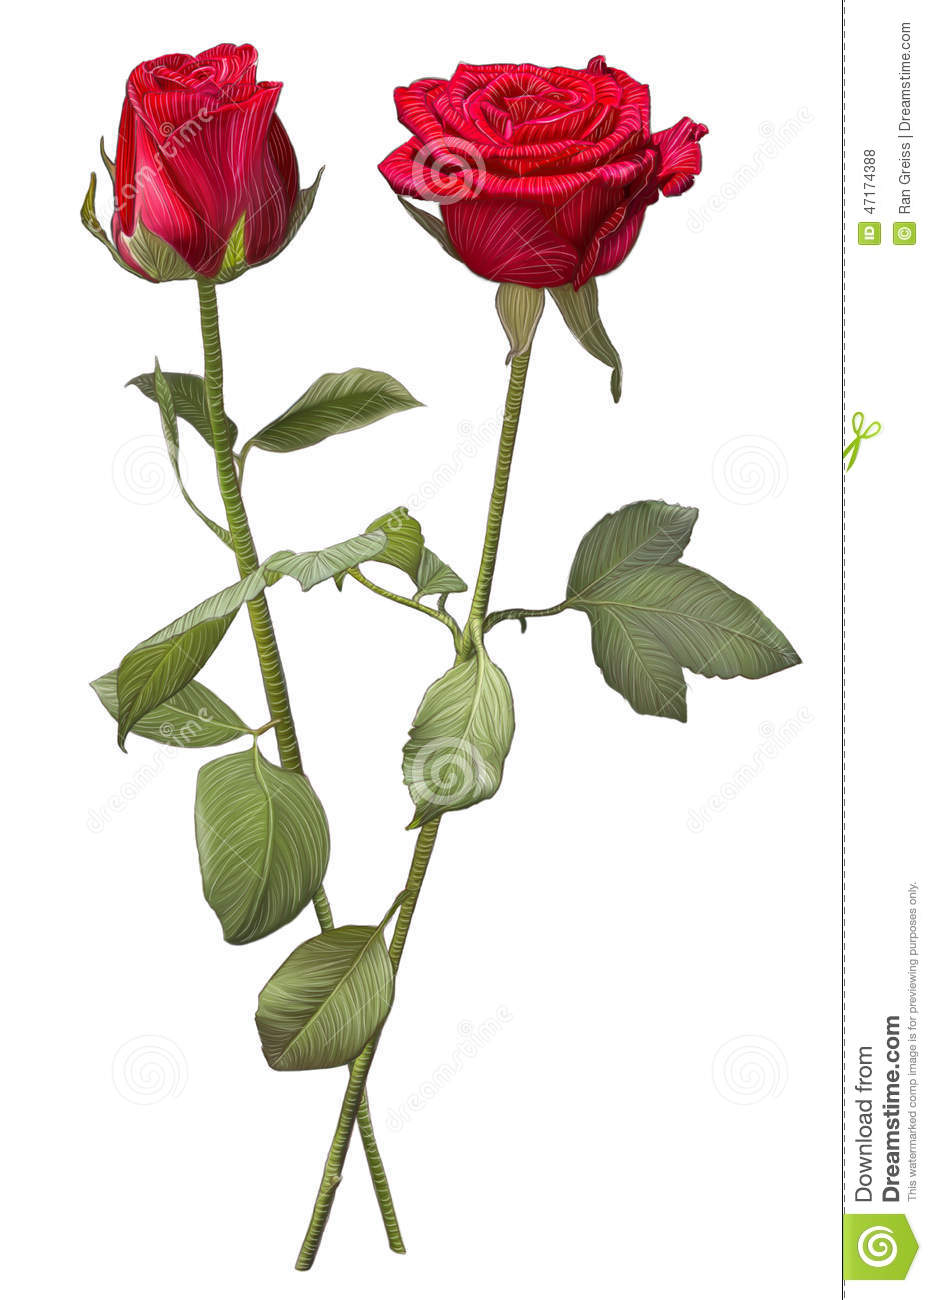 Drawing of two red rose red rose flower drawing